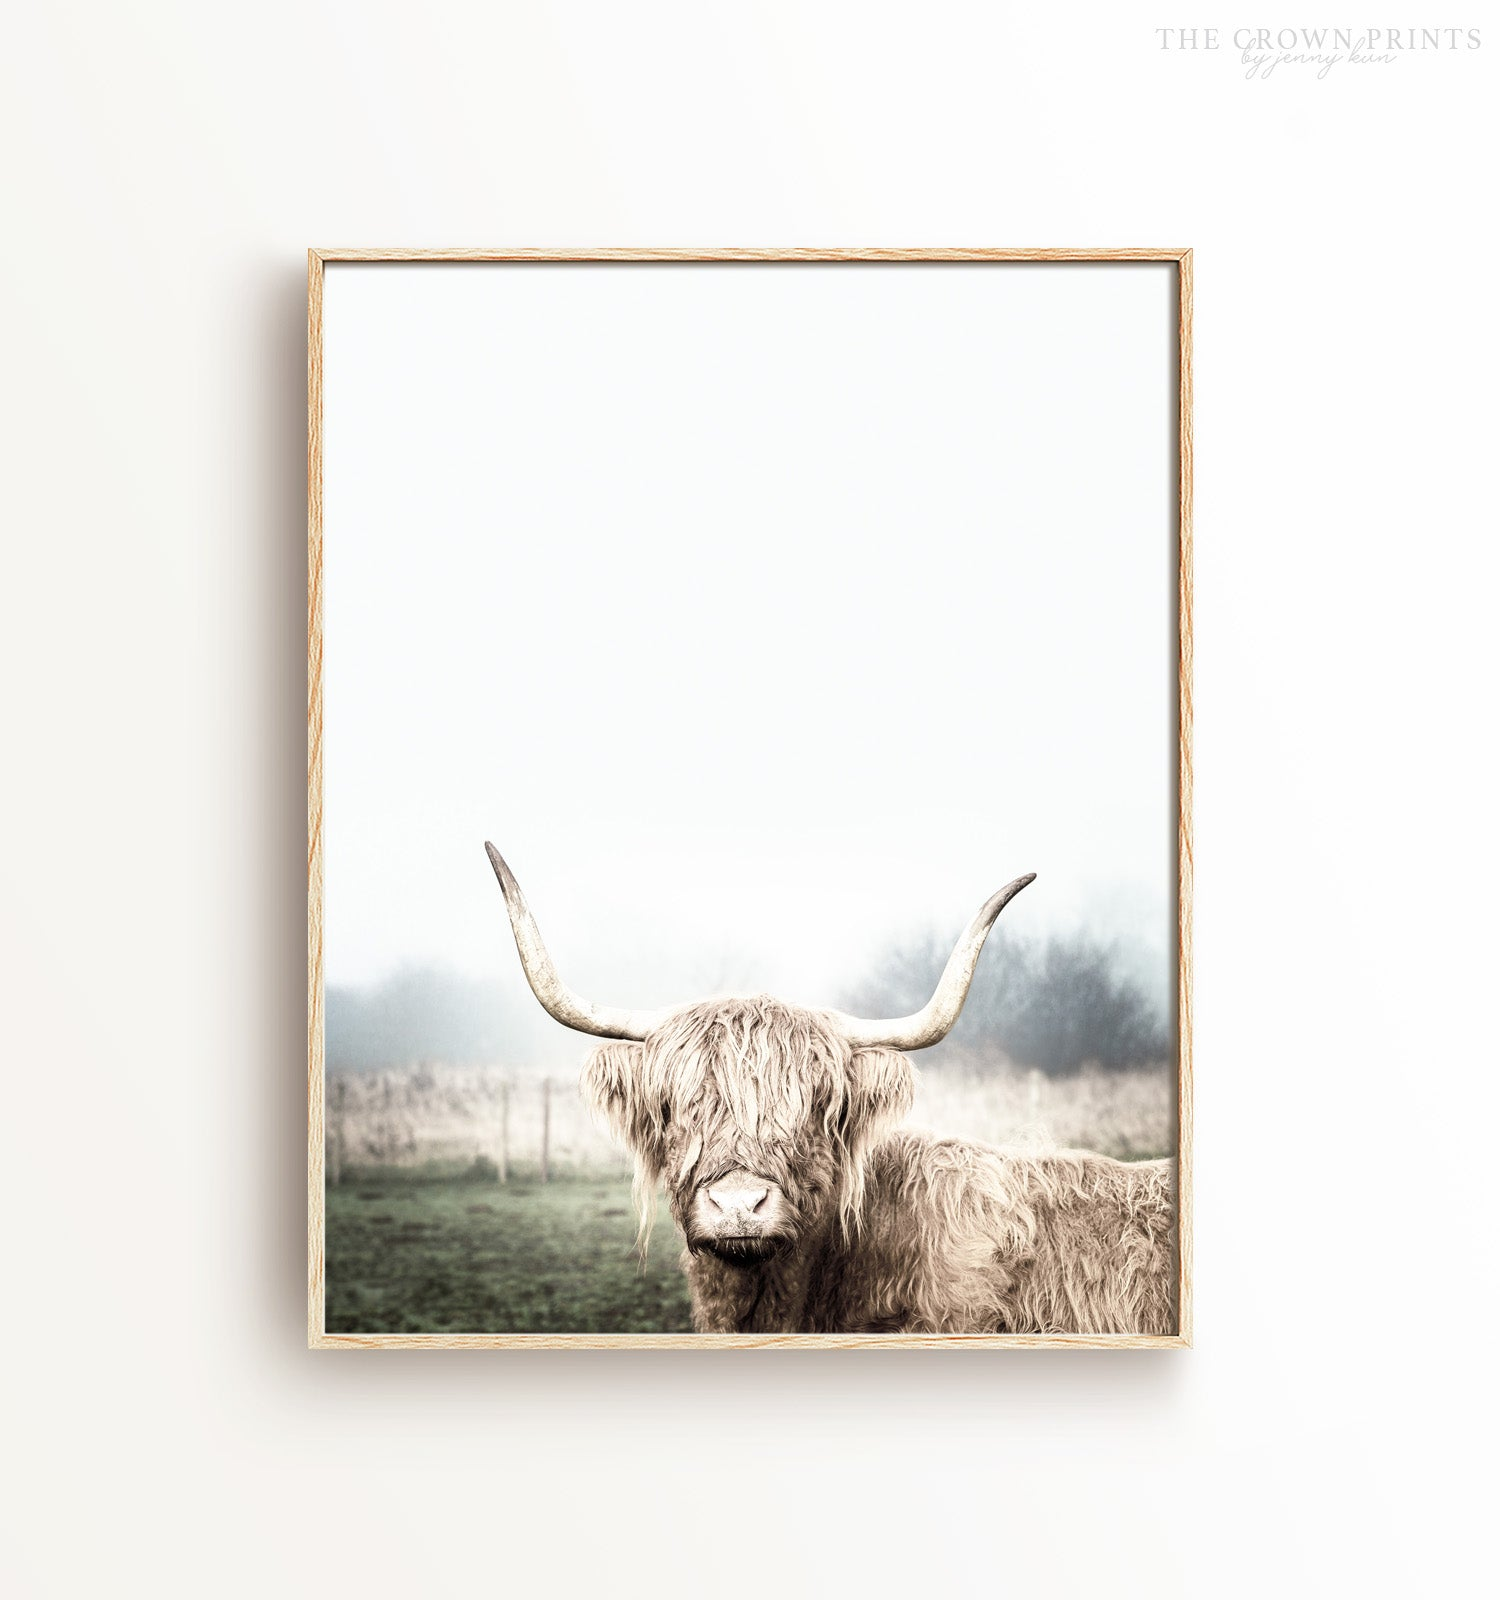 Highland Cow No. 2